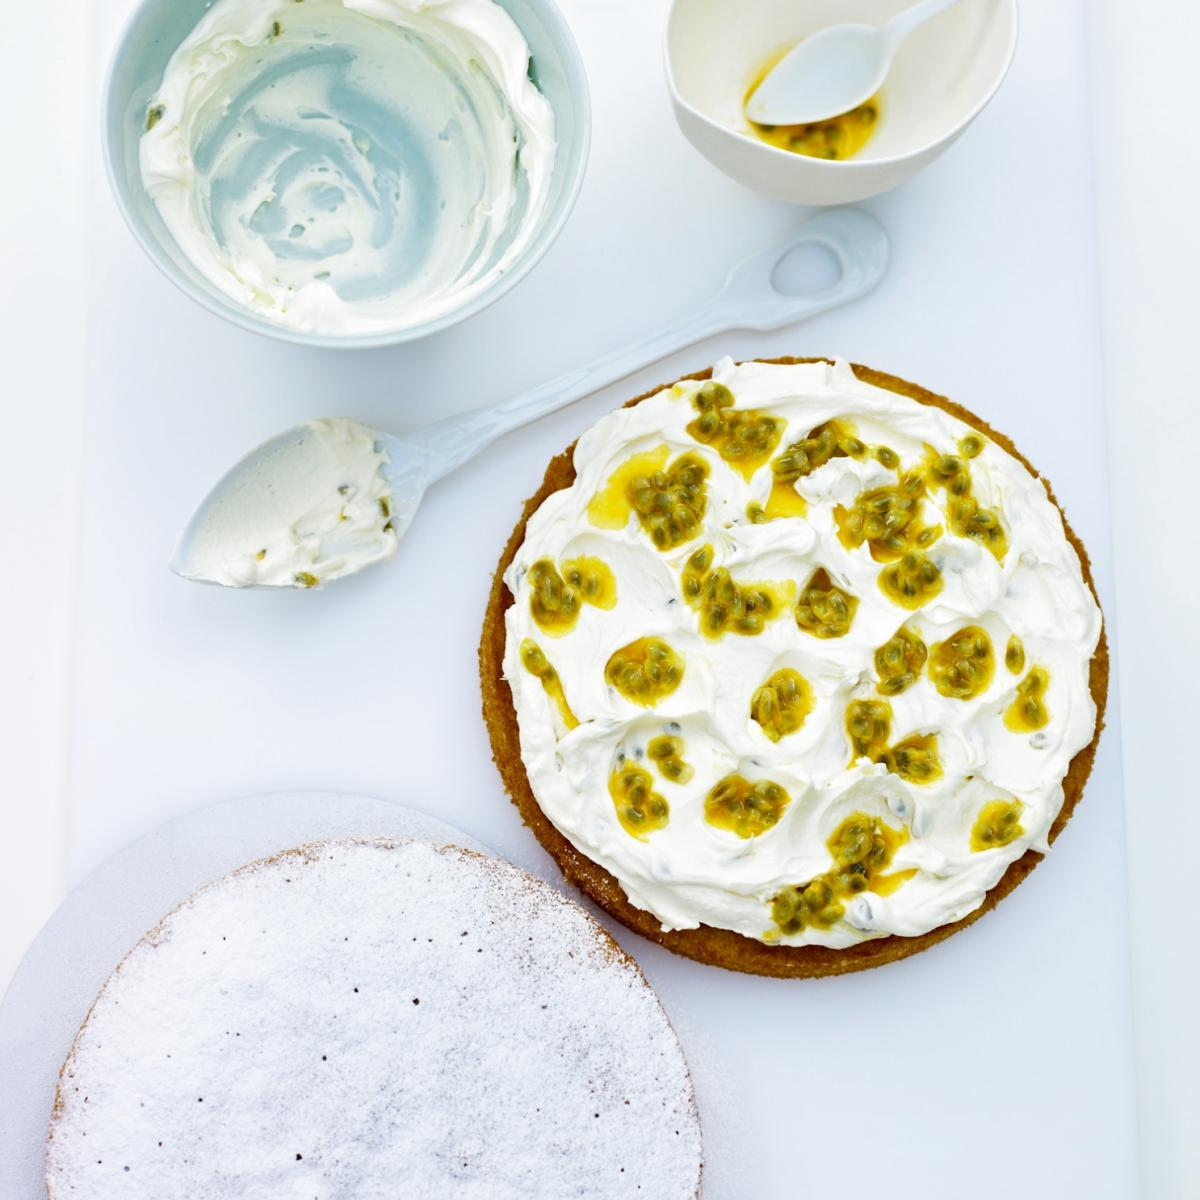 A picture of Delia's Fresh Orange and Passion Fruit Cake recipe